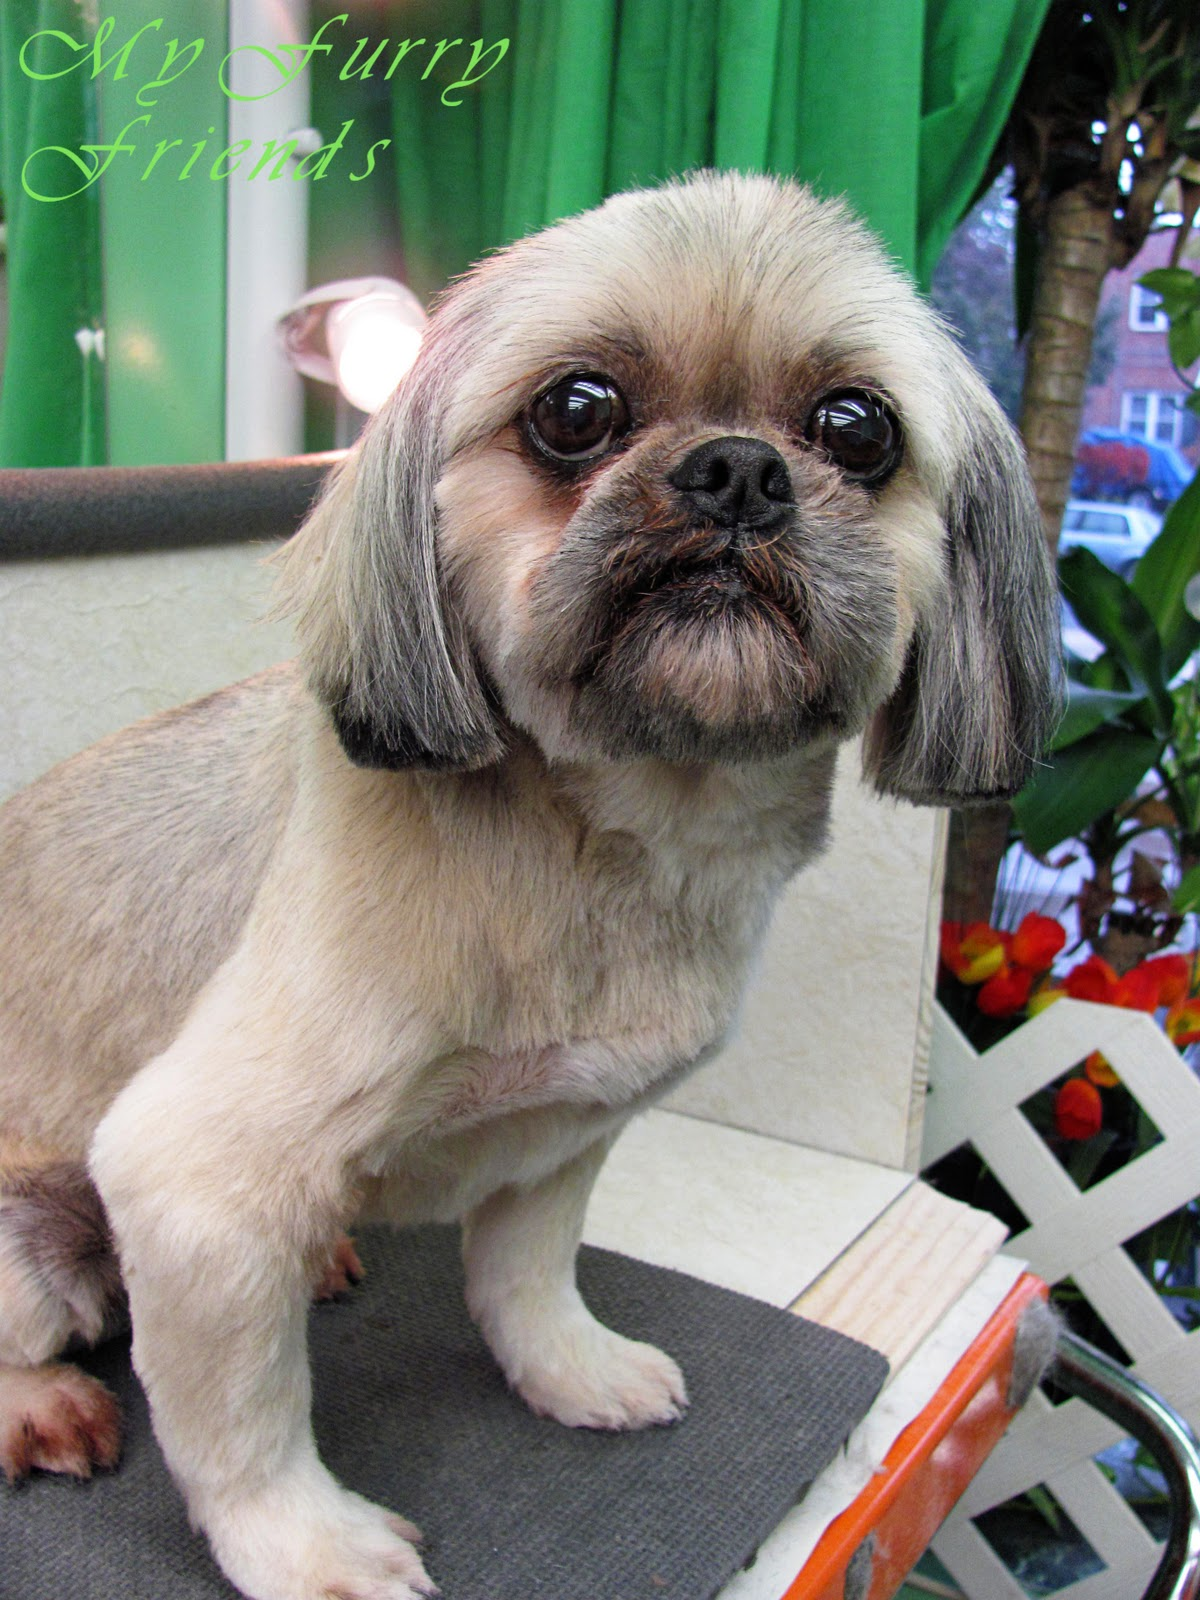 Pet Grooming The Good The Bad Amp The Furry Shih Tzu Day